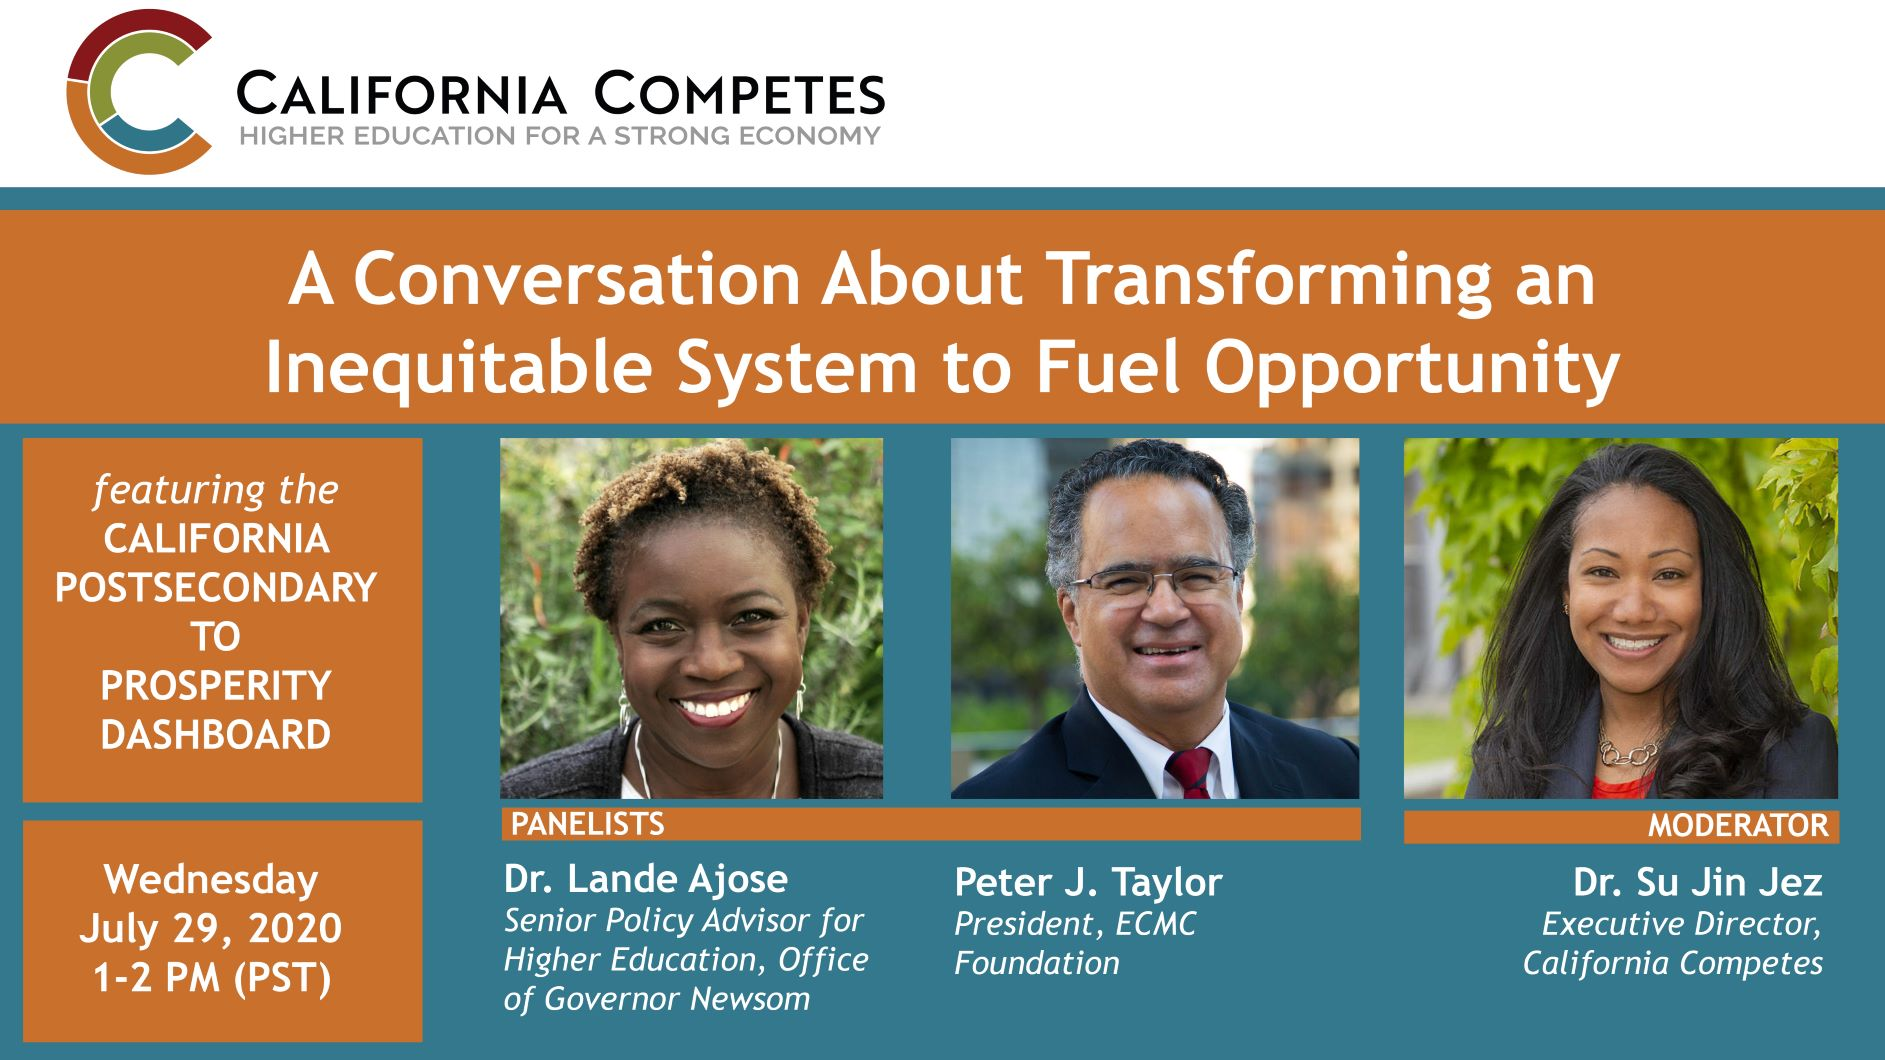 Postsecondary to Prosperity: A Conversation About Transforming an Inequitable System to Fuel Opportunity